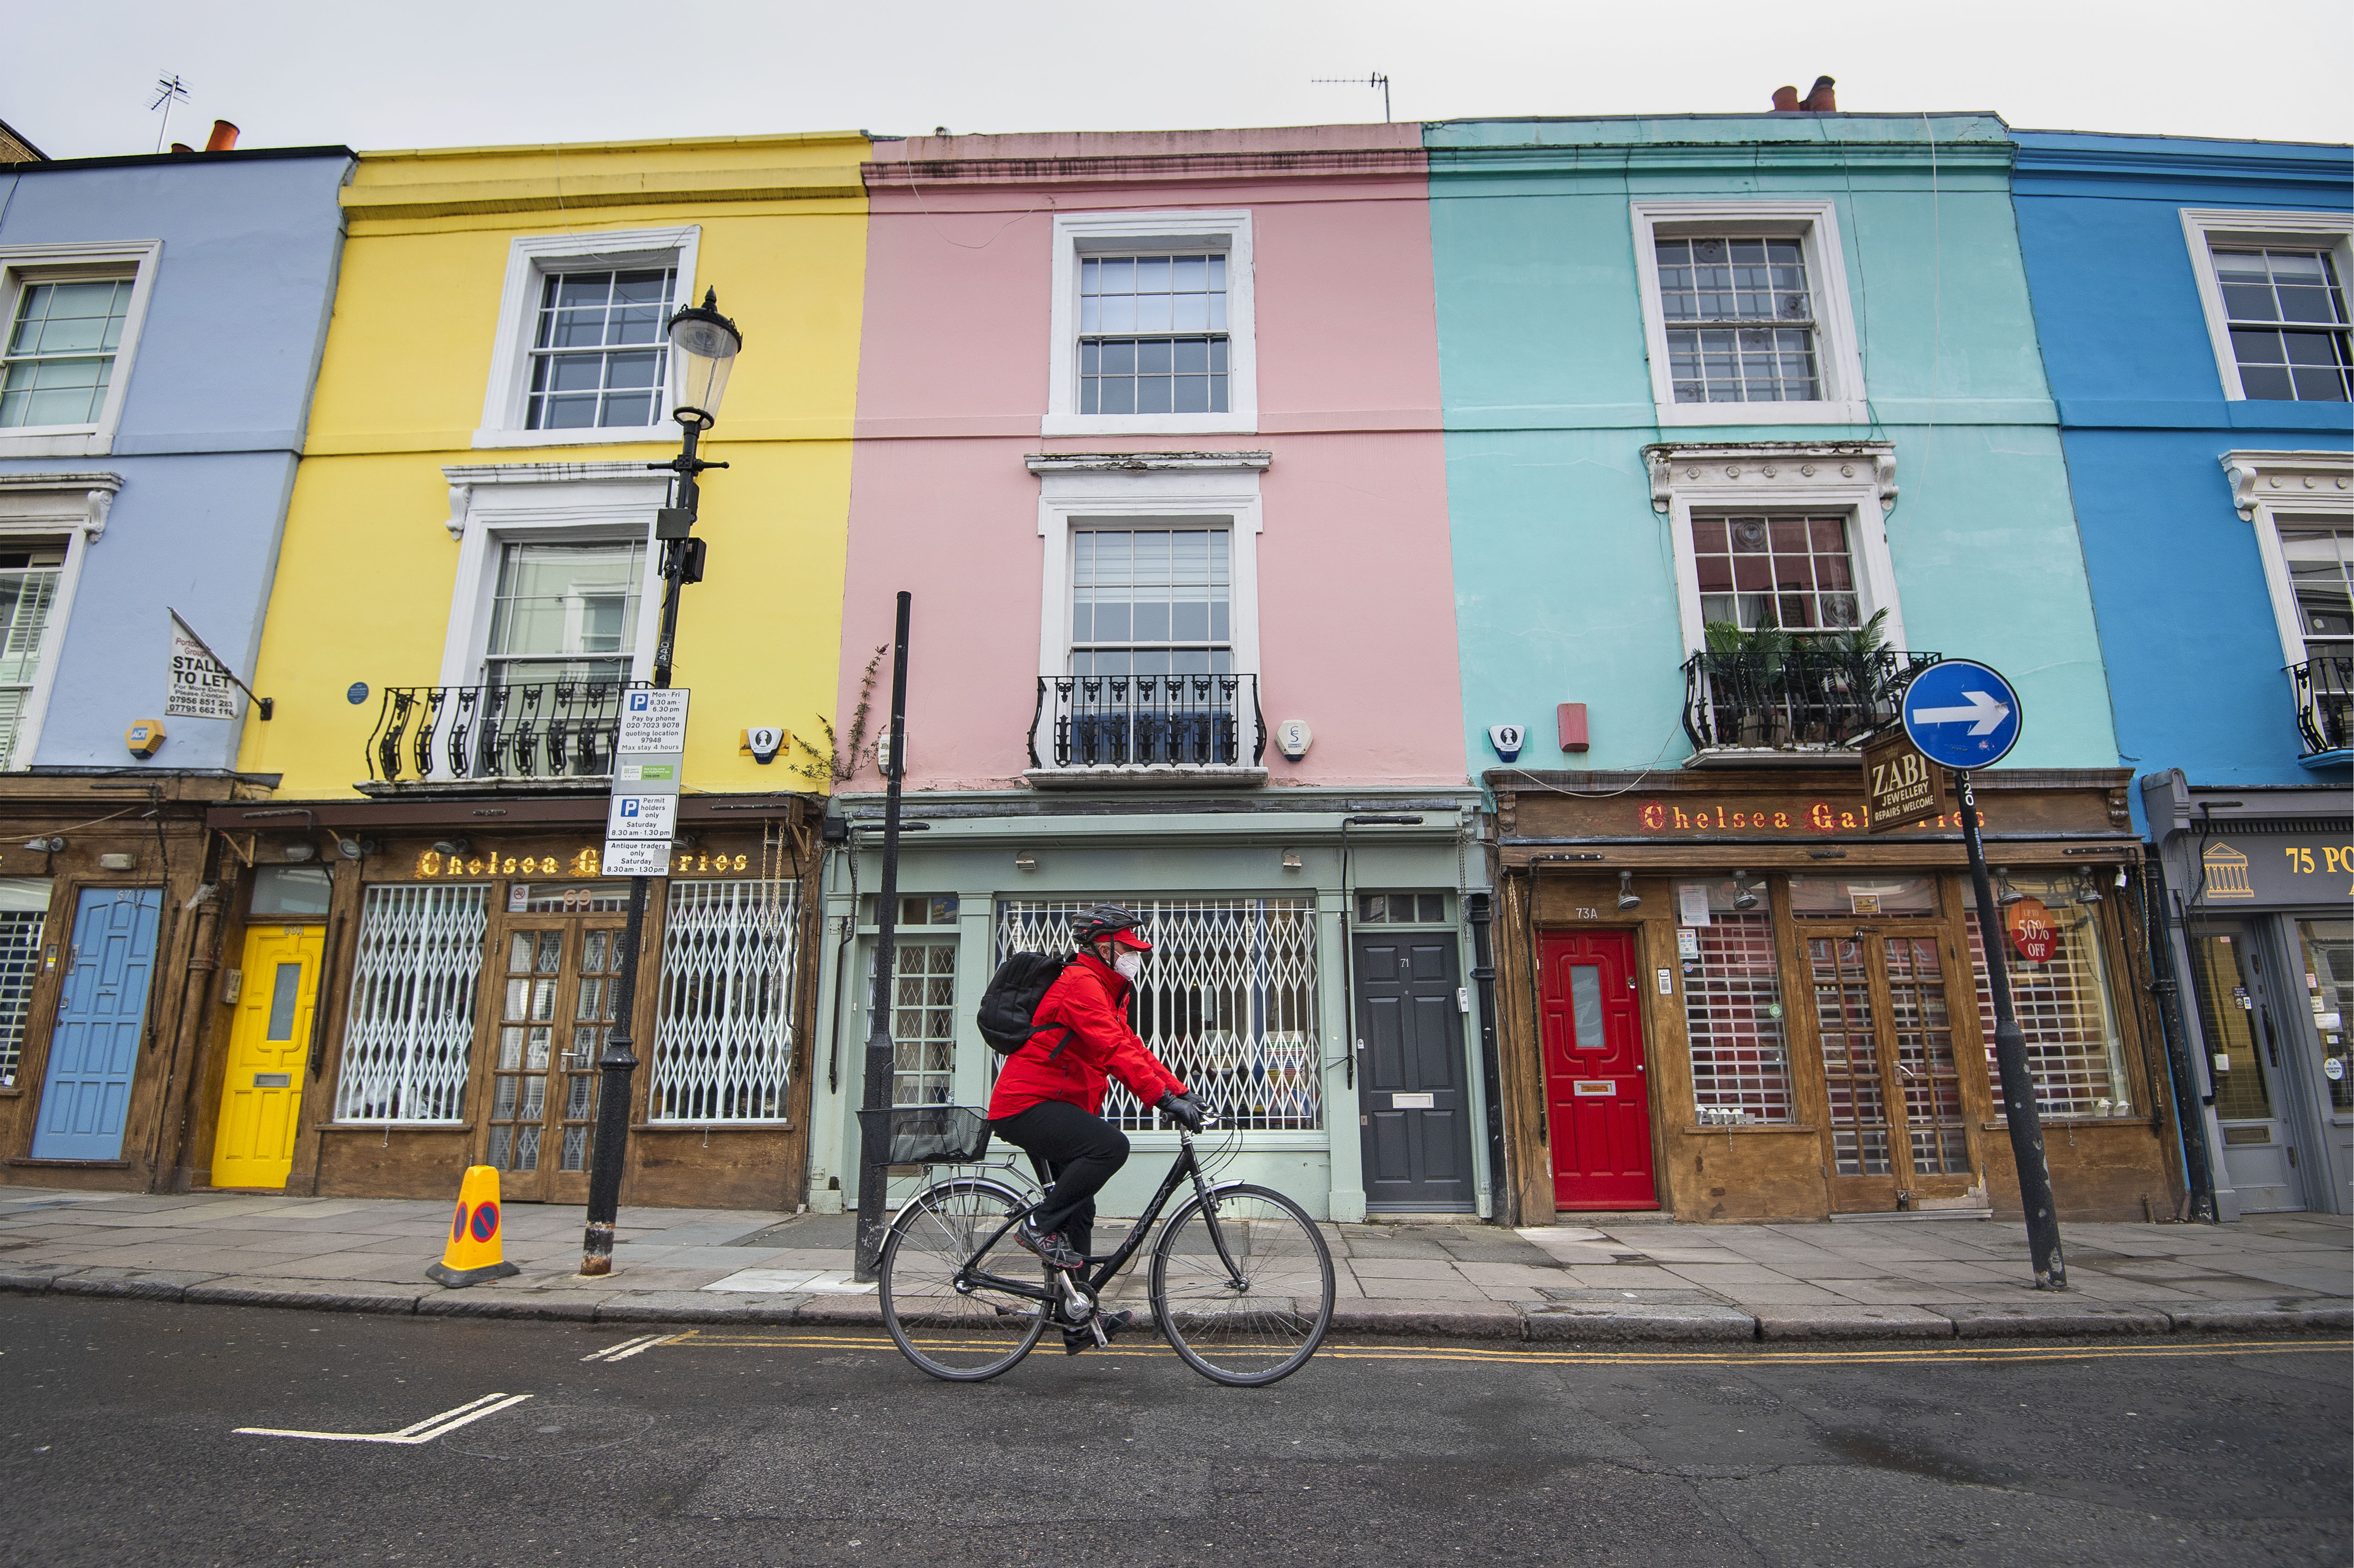 A cyclist wearing a face mask rides past closed up shops on Portobello Road in West London as the UK continues in lockdown to help curb the spread of the coronavirus.